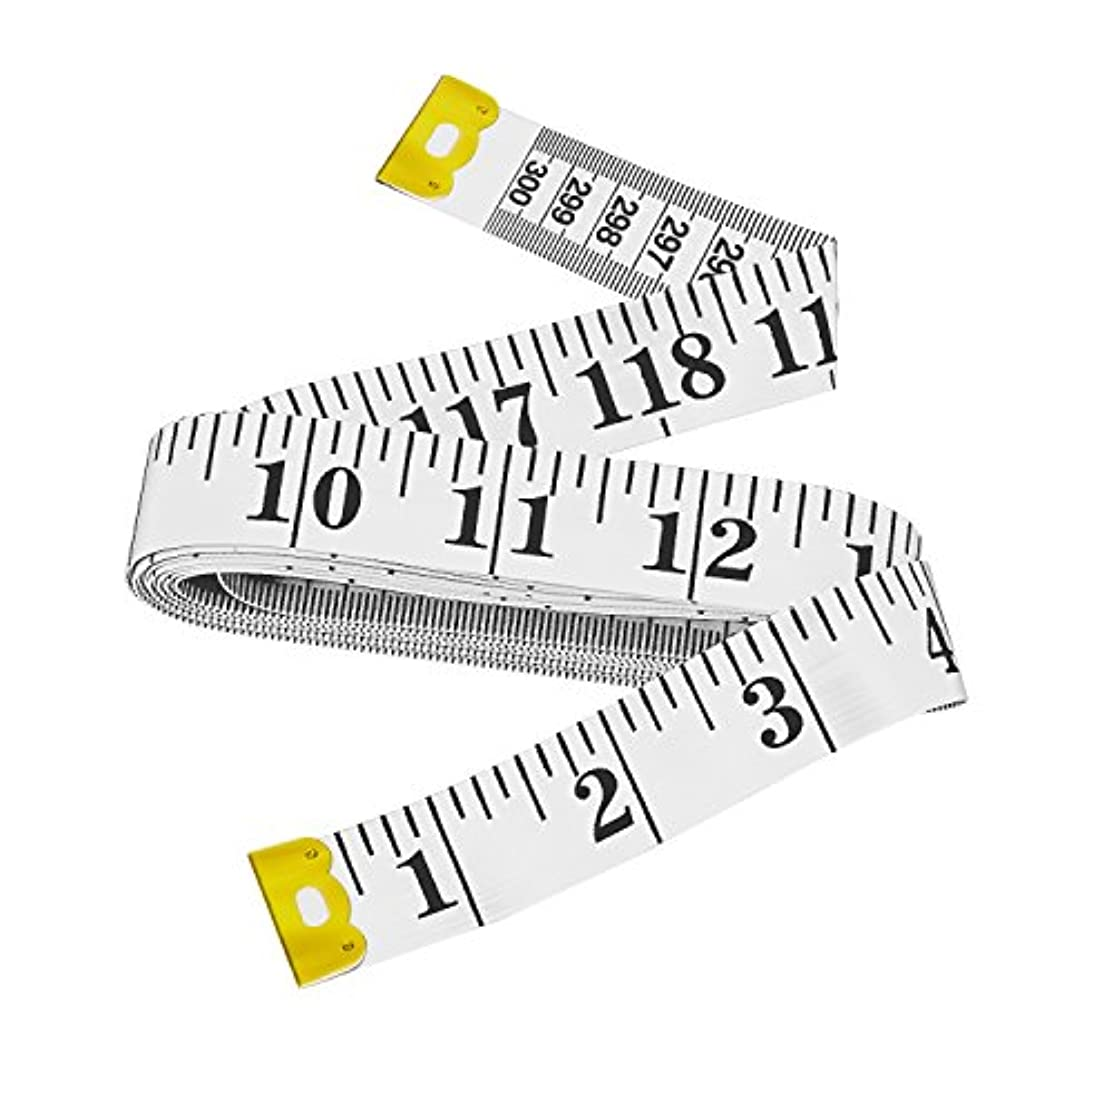 Bestty 120 inches Double Scale Soft Tape Measure Flexible Ruler for Weight Loss Medical Body Measuremen Sewing Tailor Cloth Ruler(300cm/120inch)-White